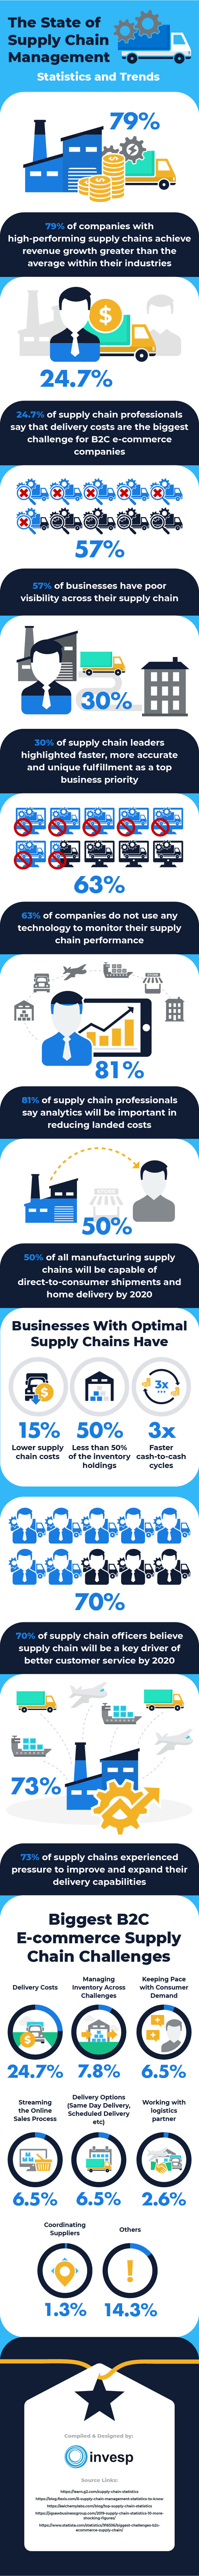 The State of Supply Chain Managment – Statistics and Trends